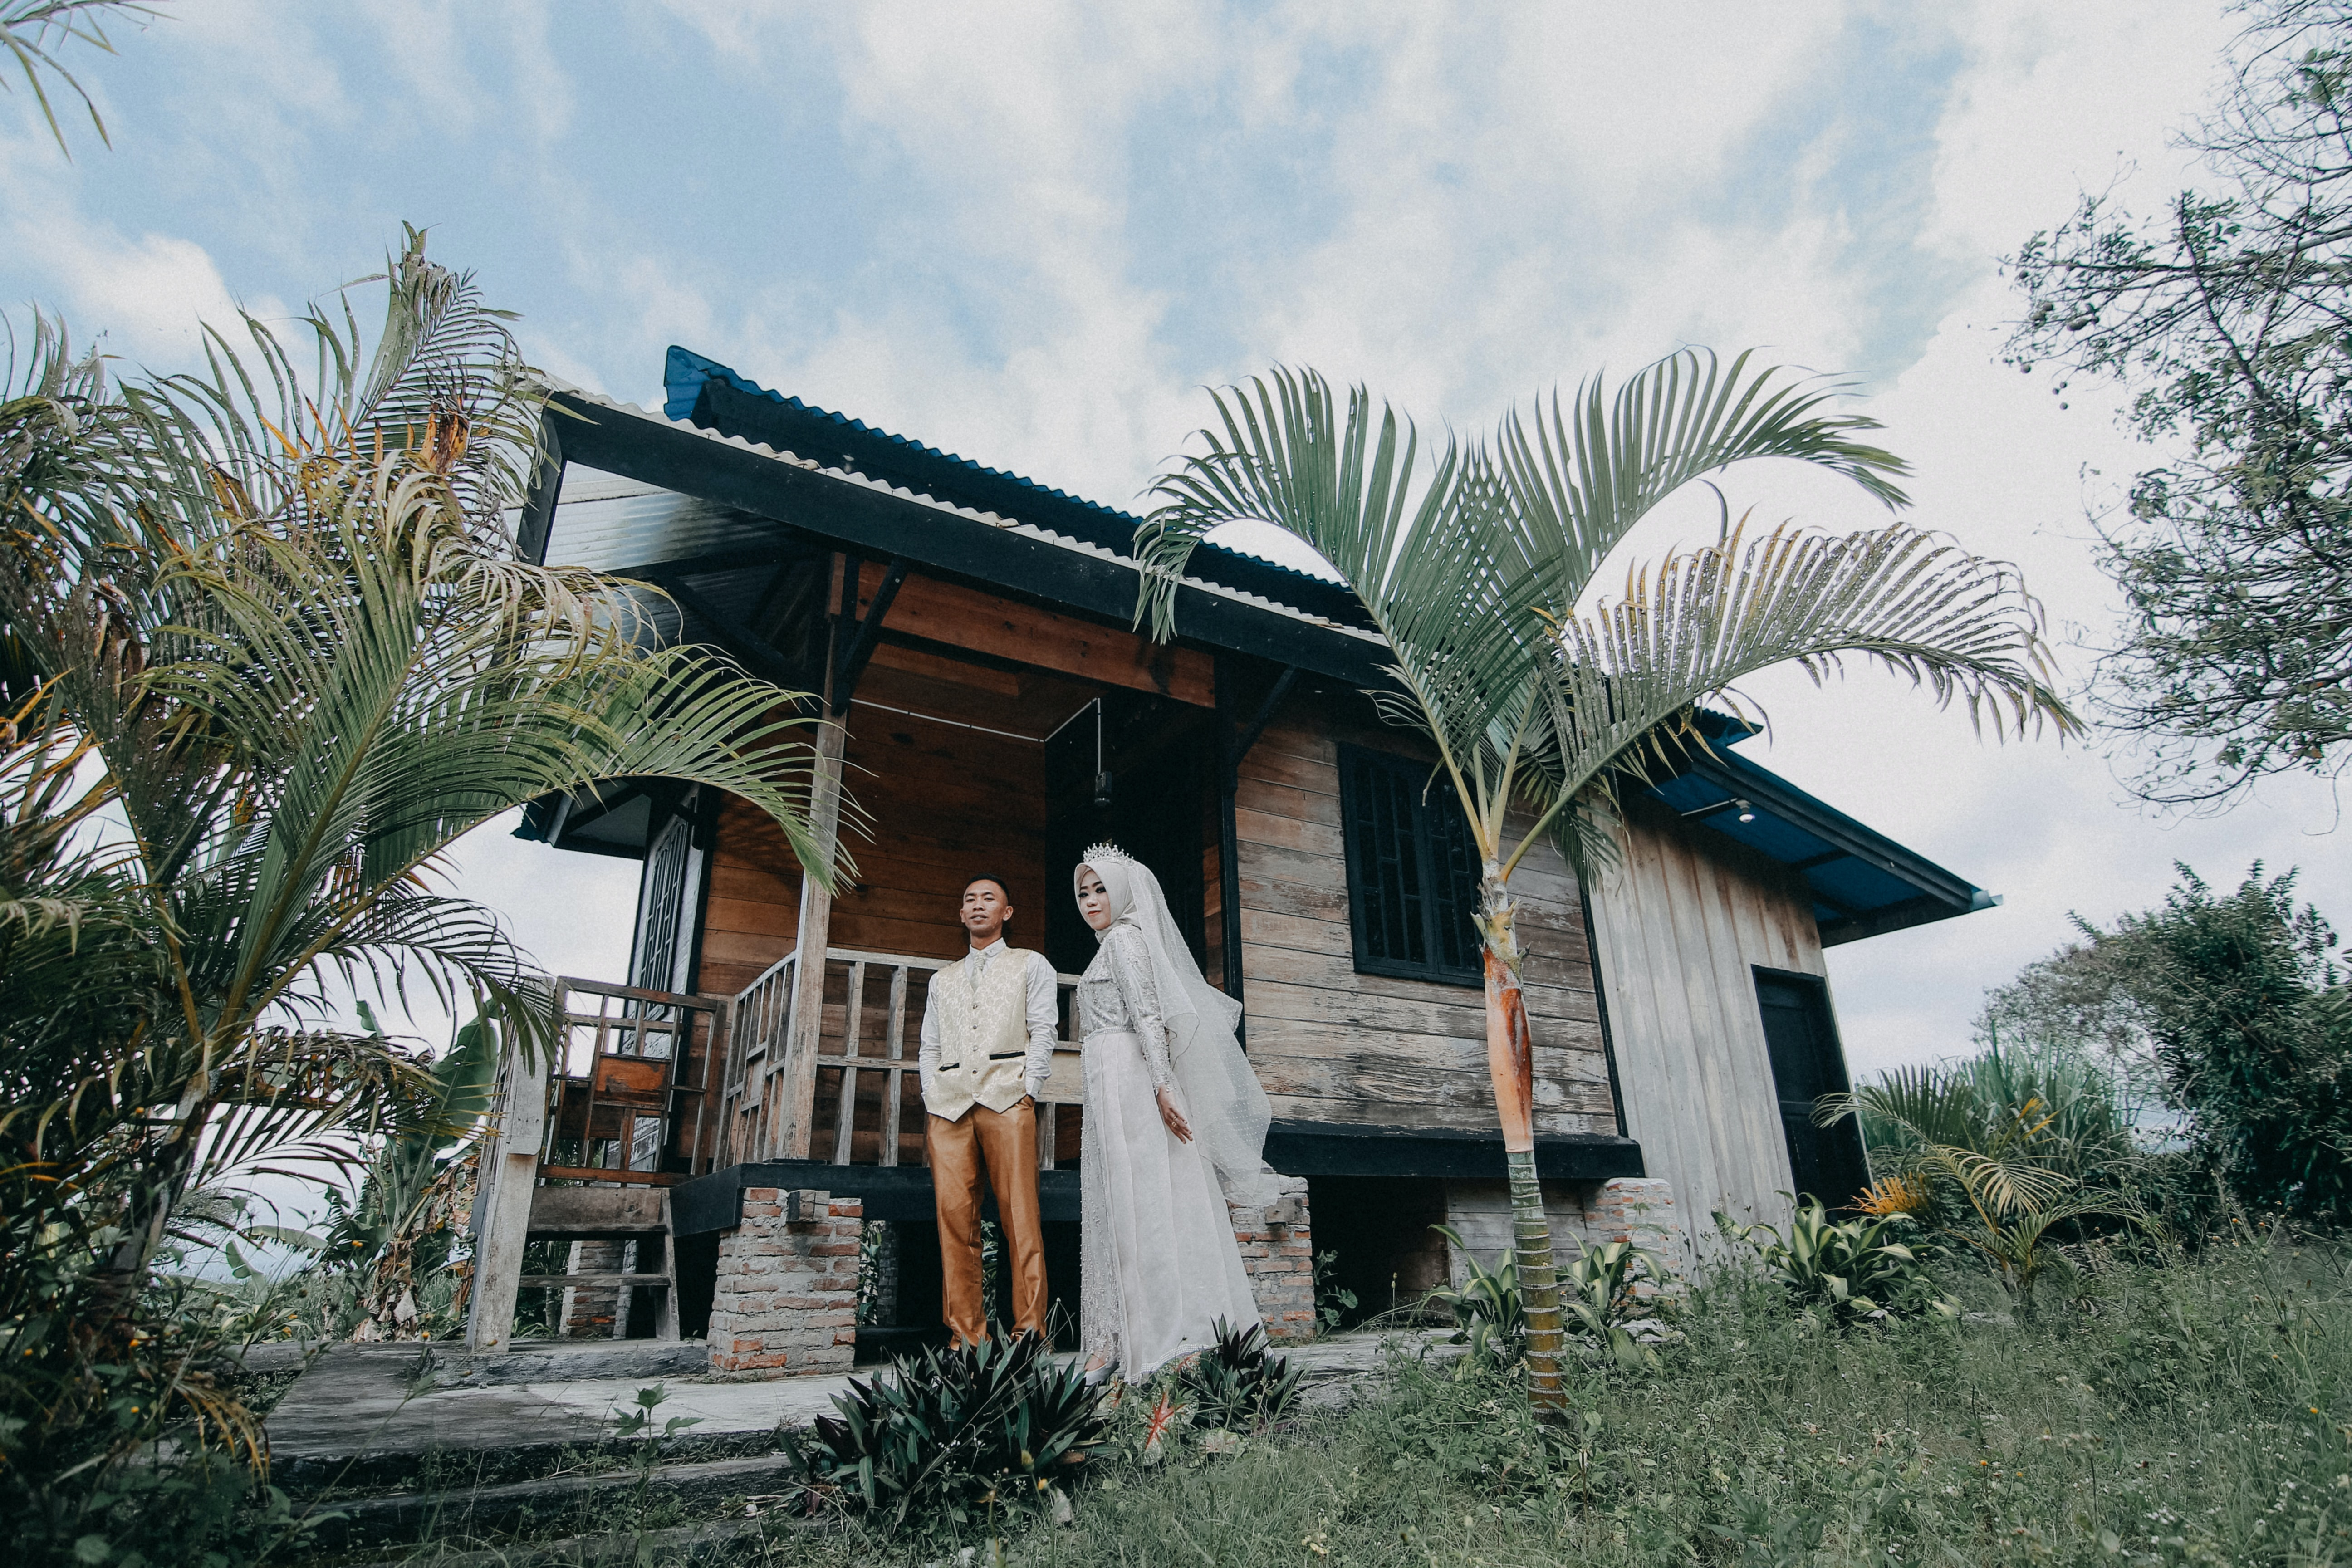 newly wed couple standing outside the wooden bungalow during day time